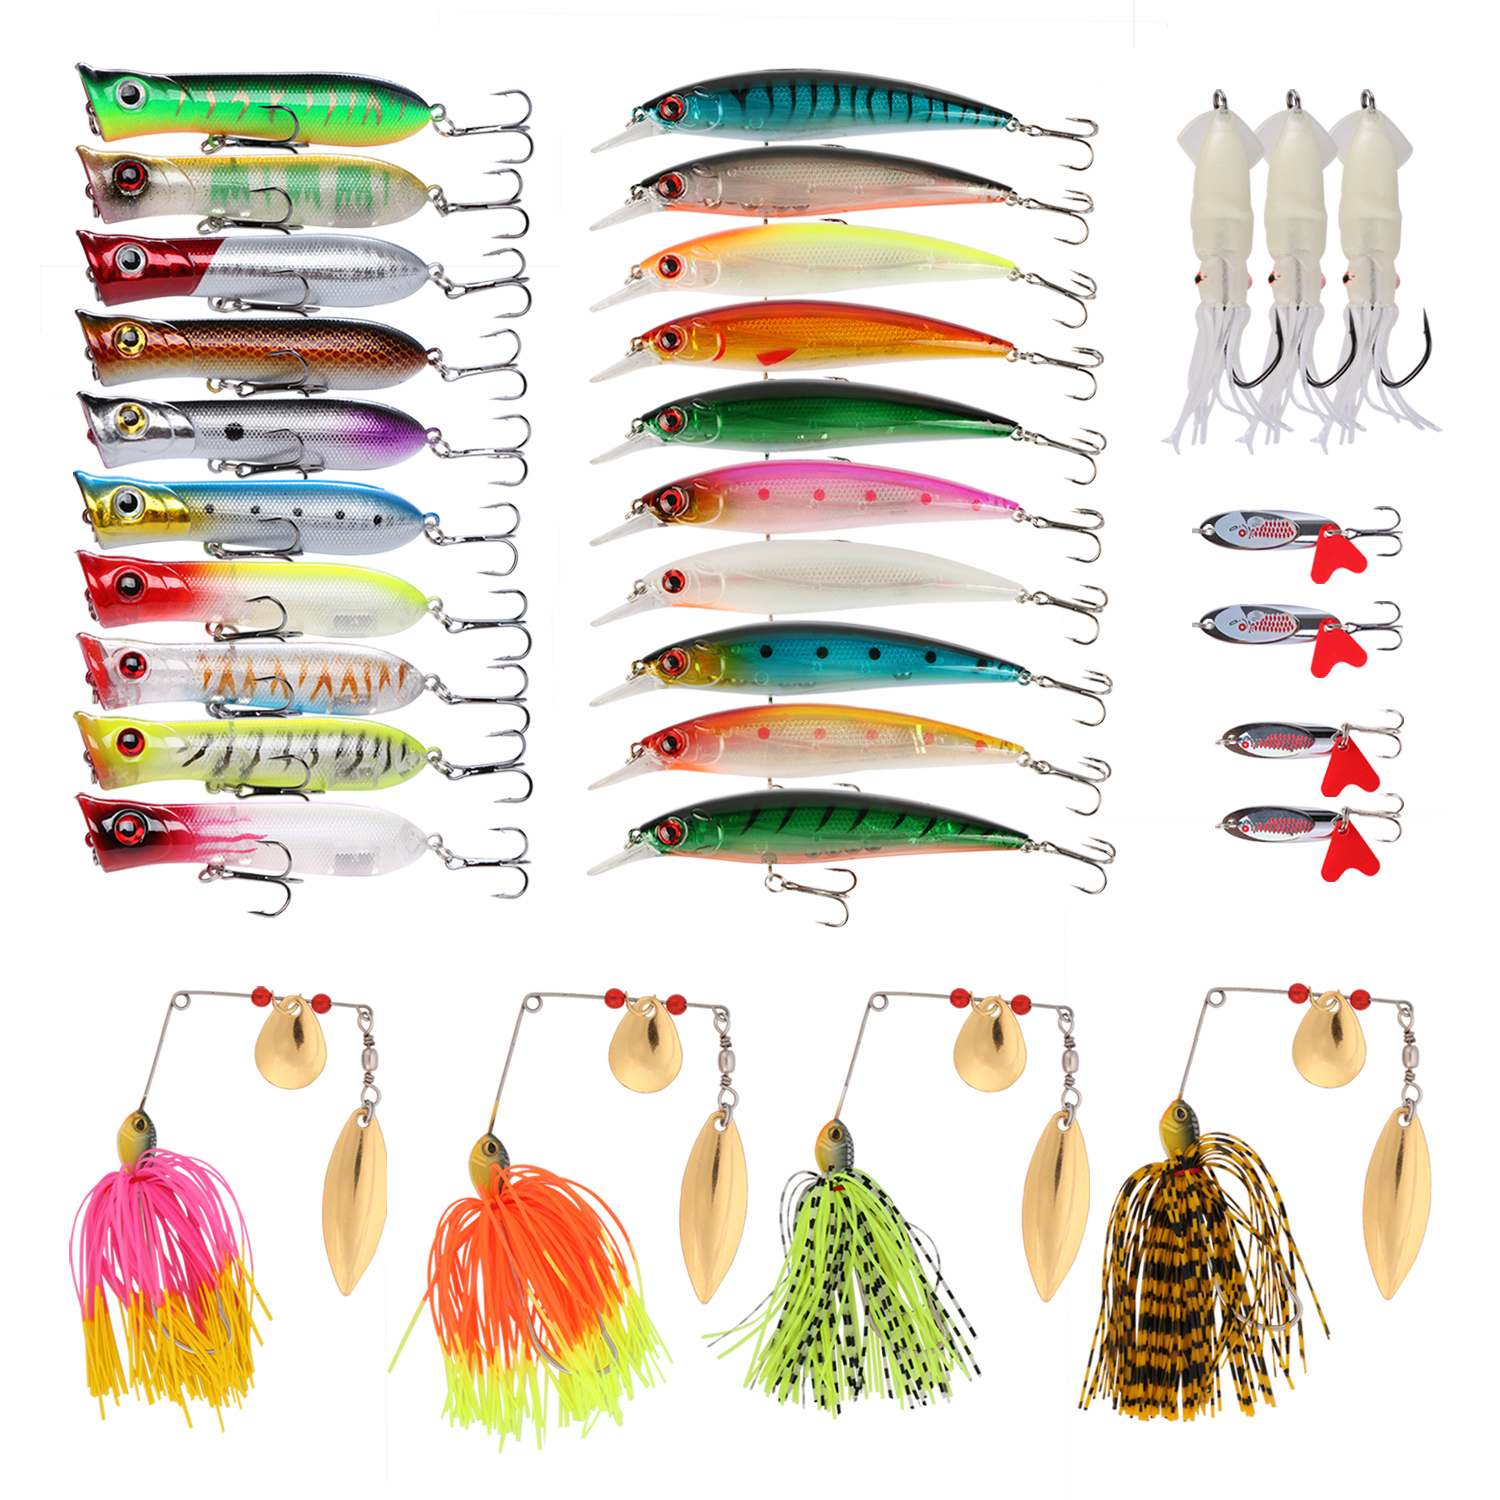 Goture Fishing Lure Set Soft Hard Lure Kit For Bass Spinnerbait Minnow Popper Squid Frog Crankbait Spoon Included by Goture